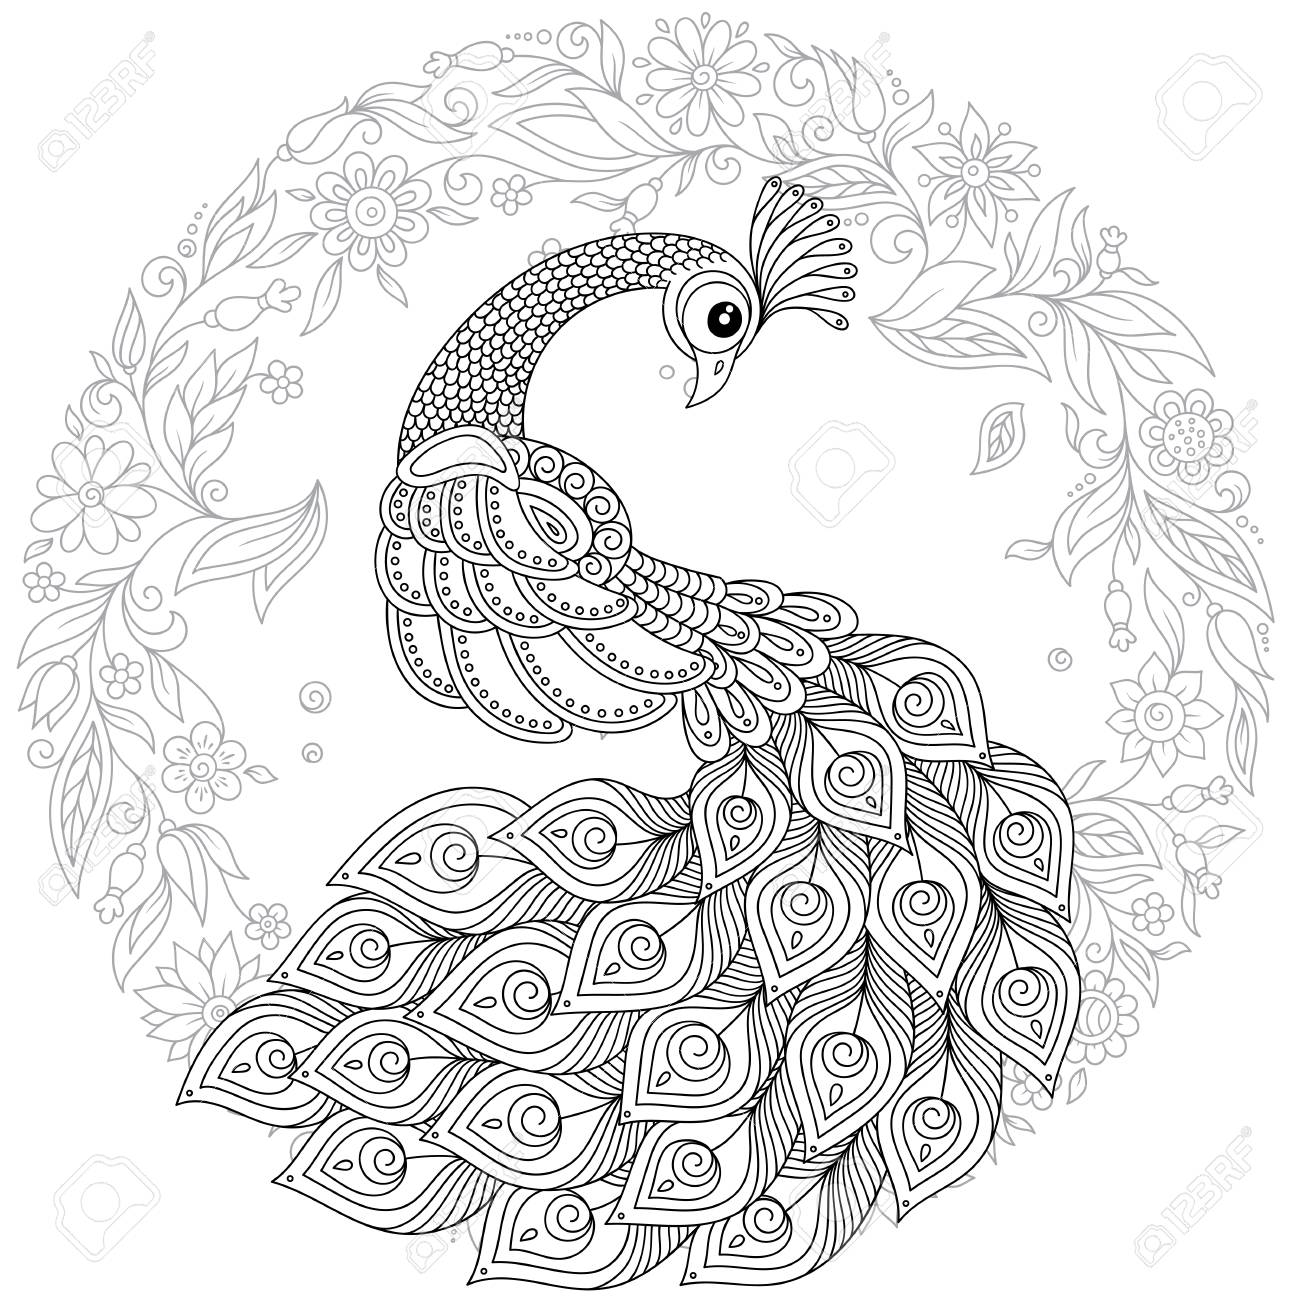 Peacock In Zentangle Style Adult Antistress Colouring Page